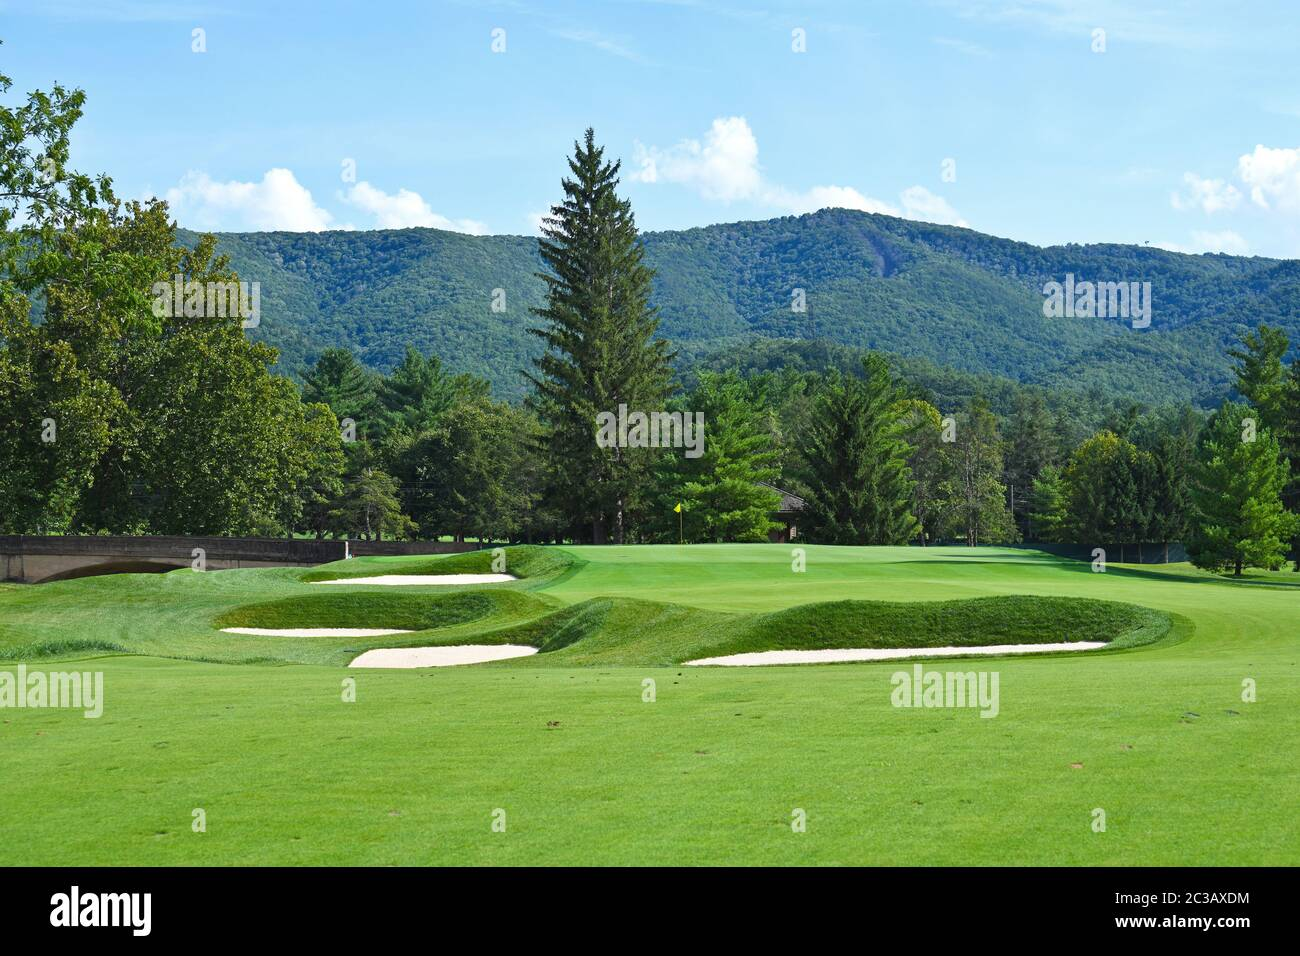 Golfing Vacations High Resolution Stock Photography And Images Alamy